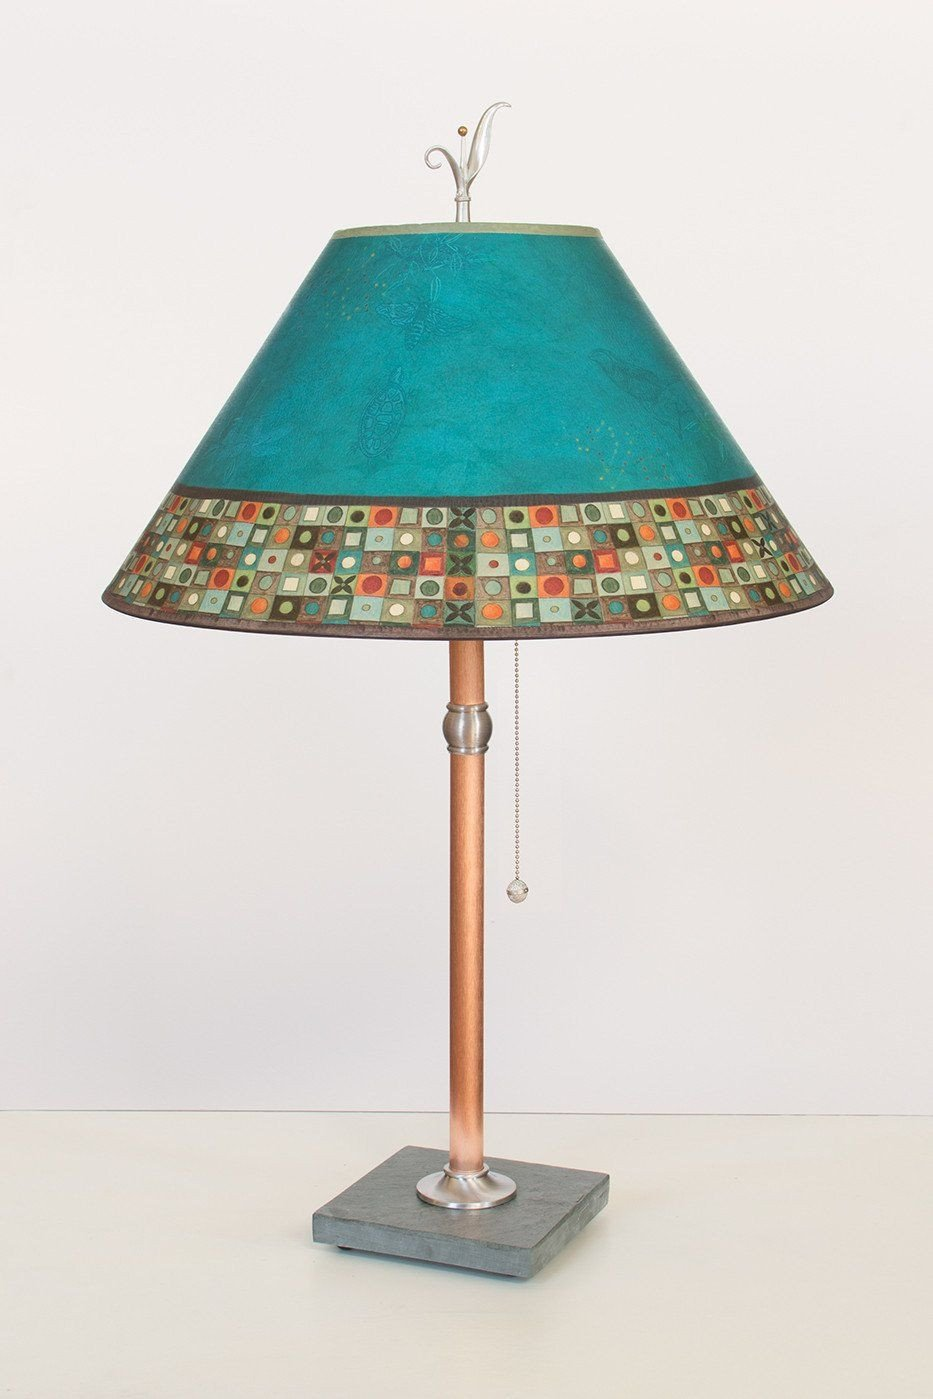 Copper Table Lamp on Vermont Slate with Large Conical Shade in Jade Mosaic